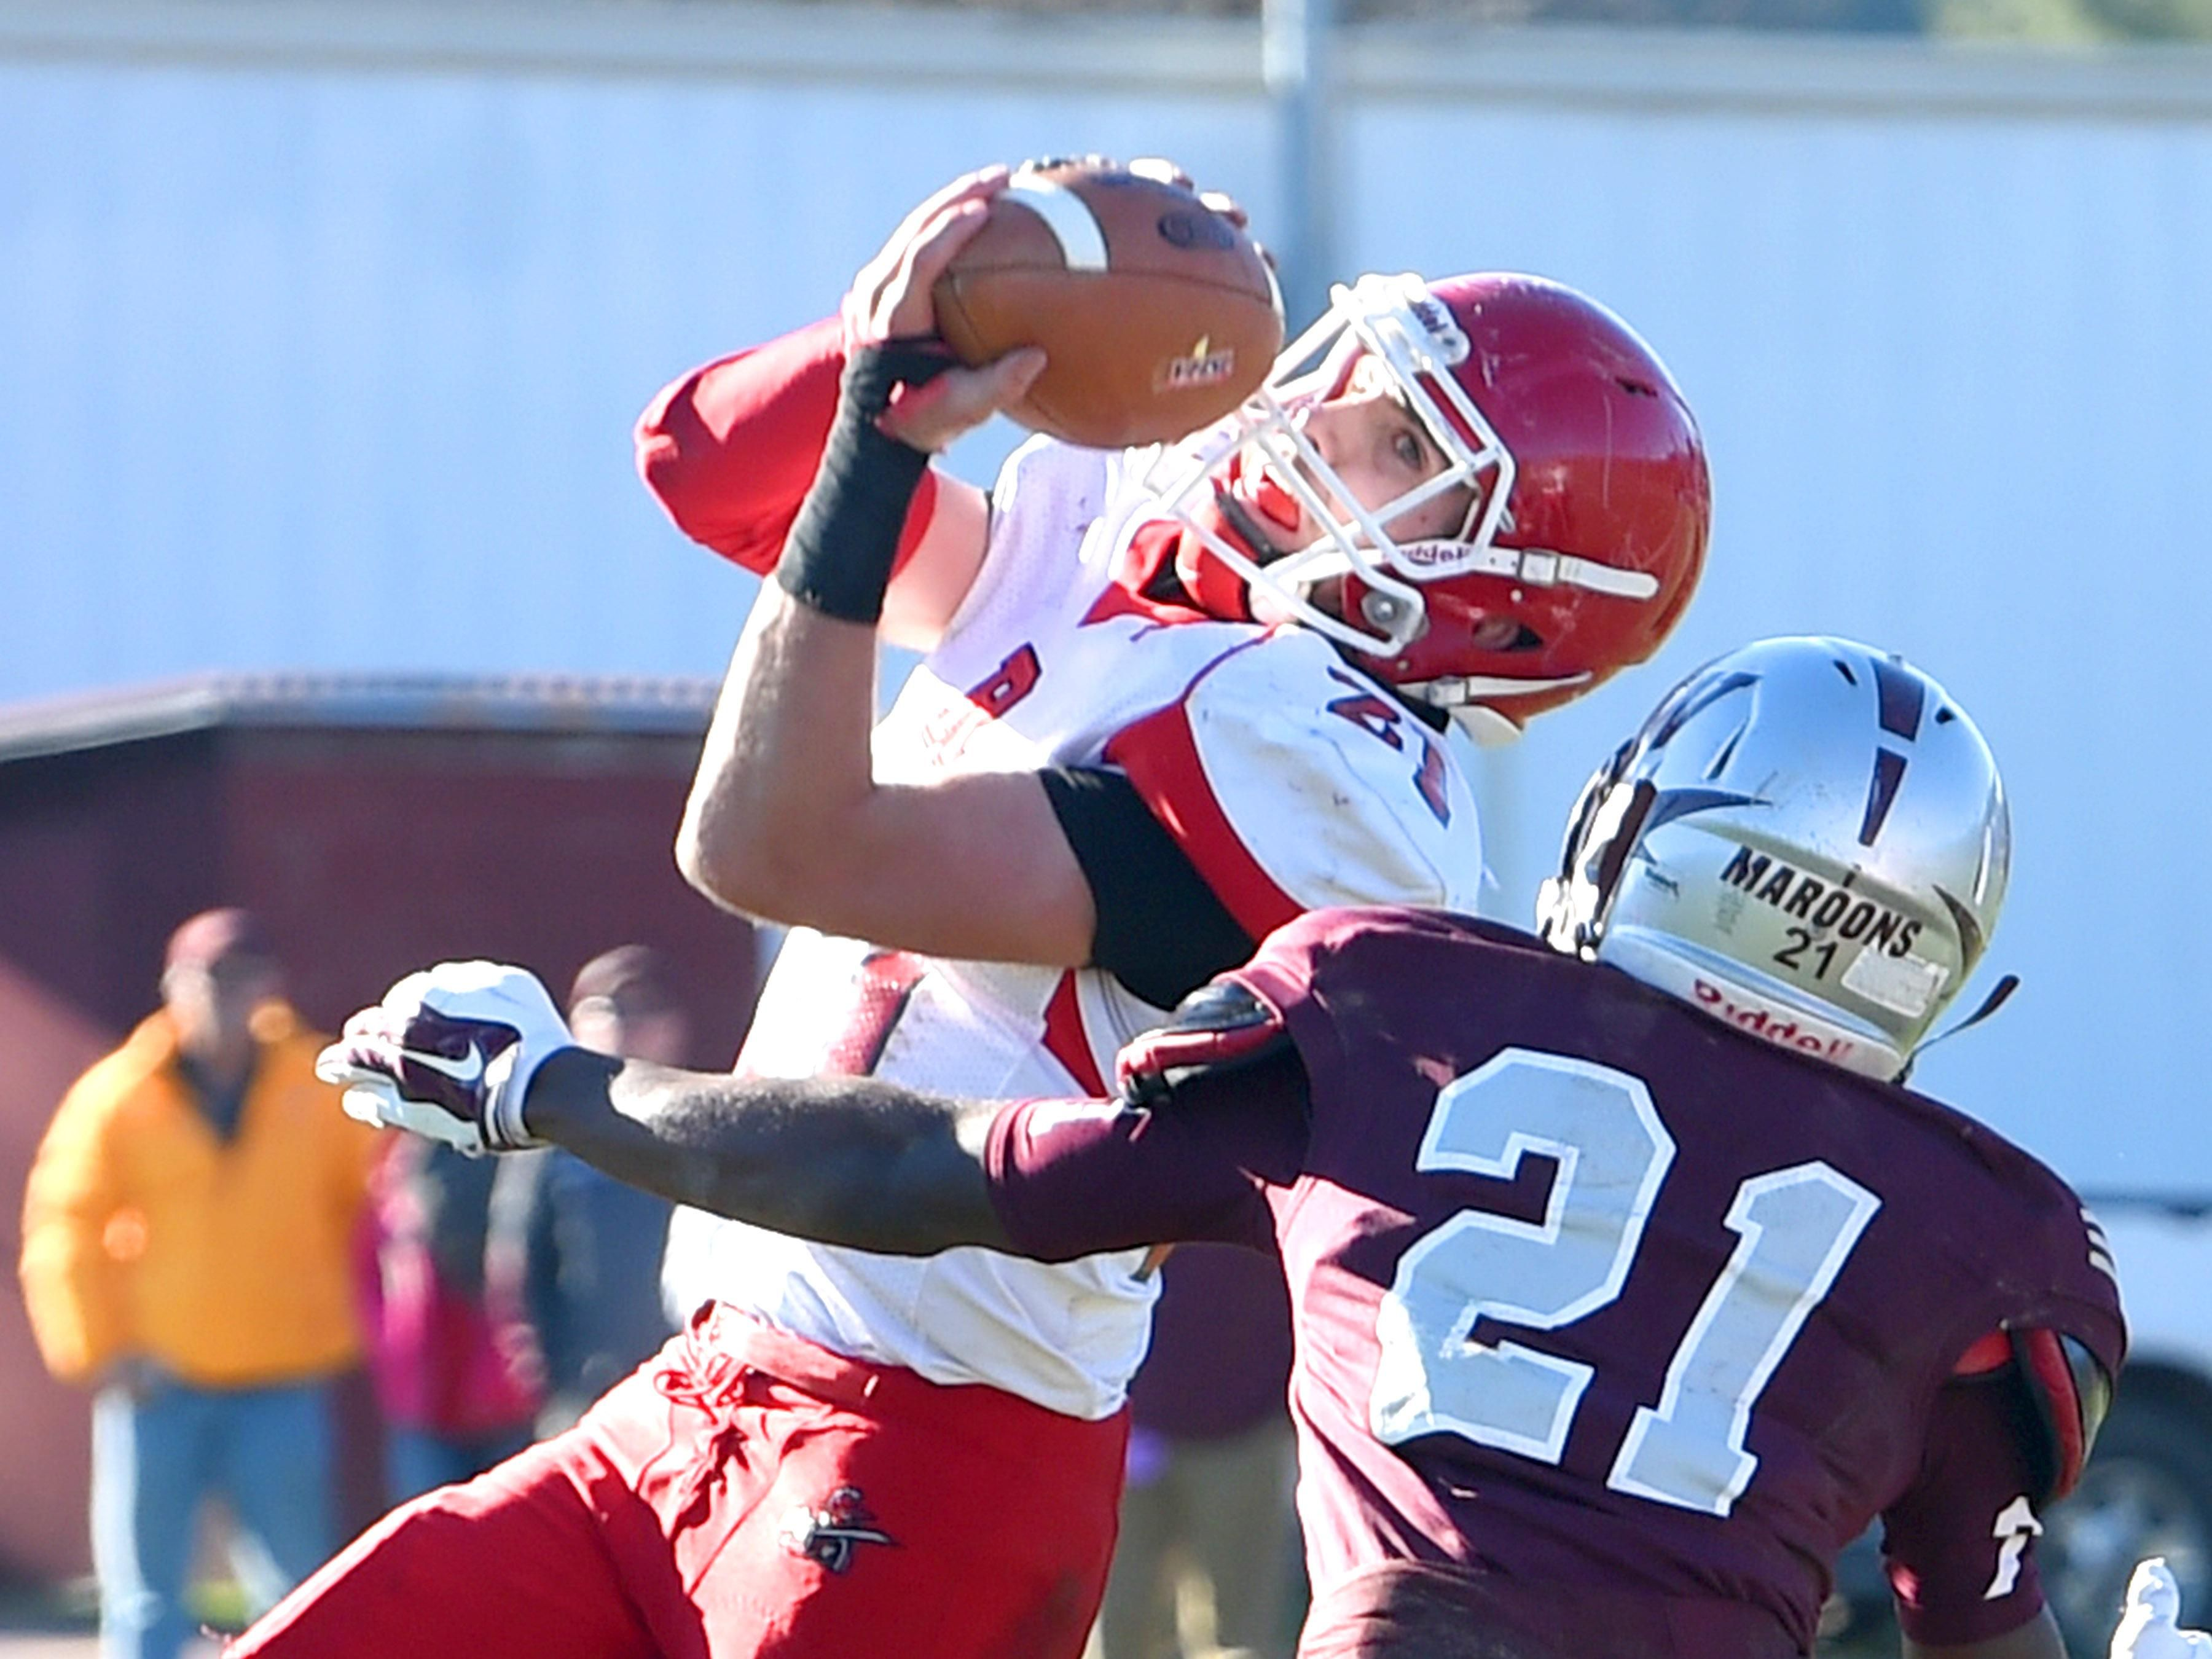 Riverheads' Taz Miller catches the ball for a pass completion during the Group 1A state semifinal football game in Wytheville on Saturday, Dec. 5, 2015.